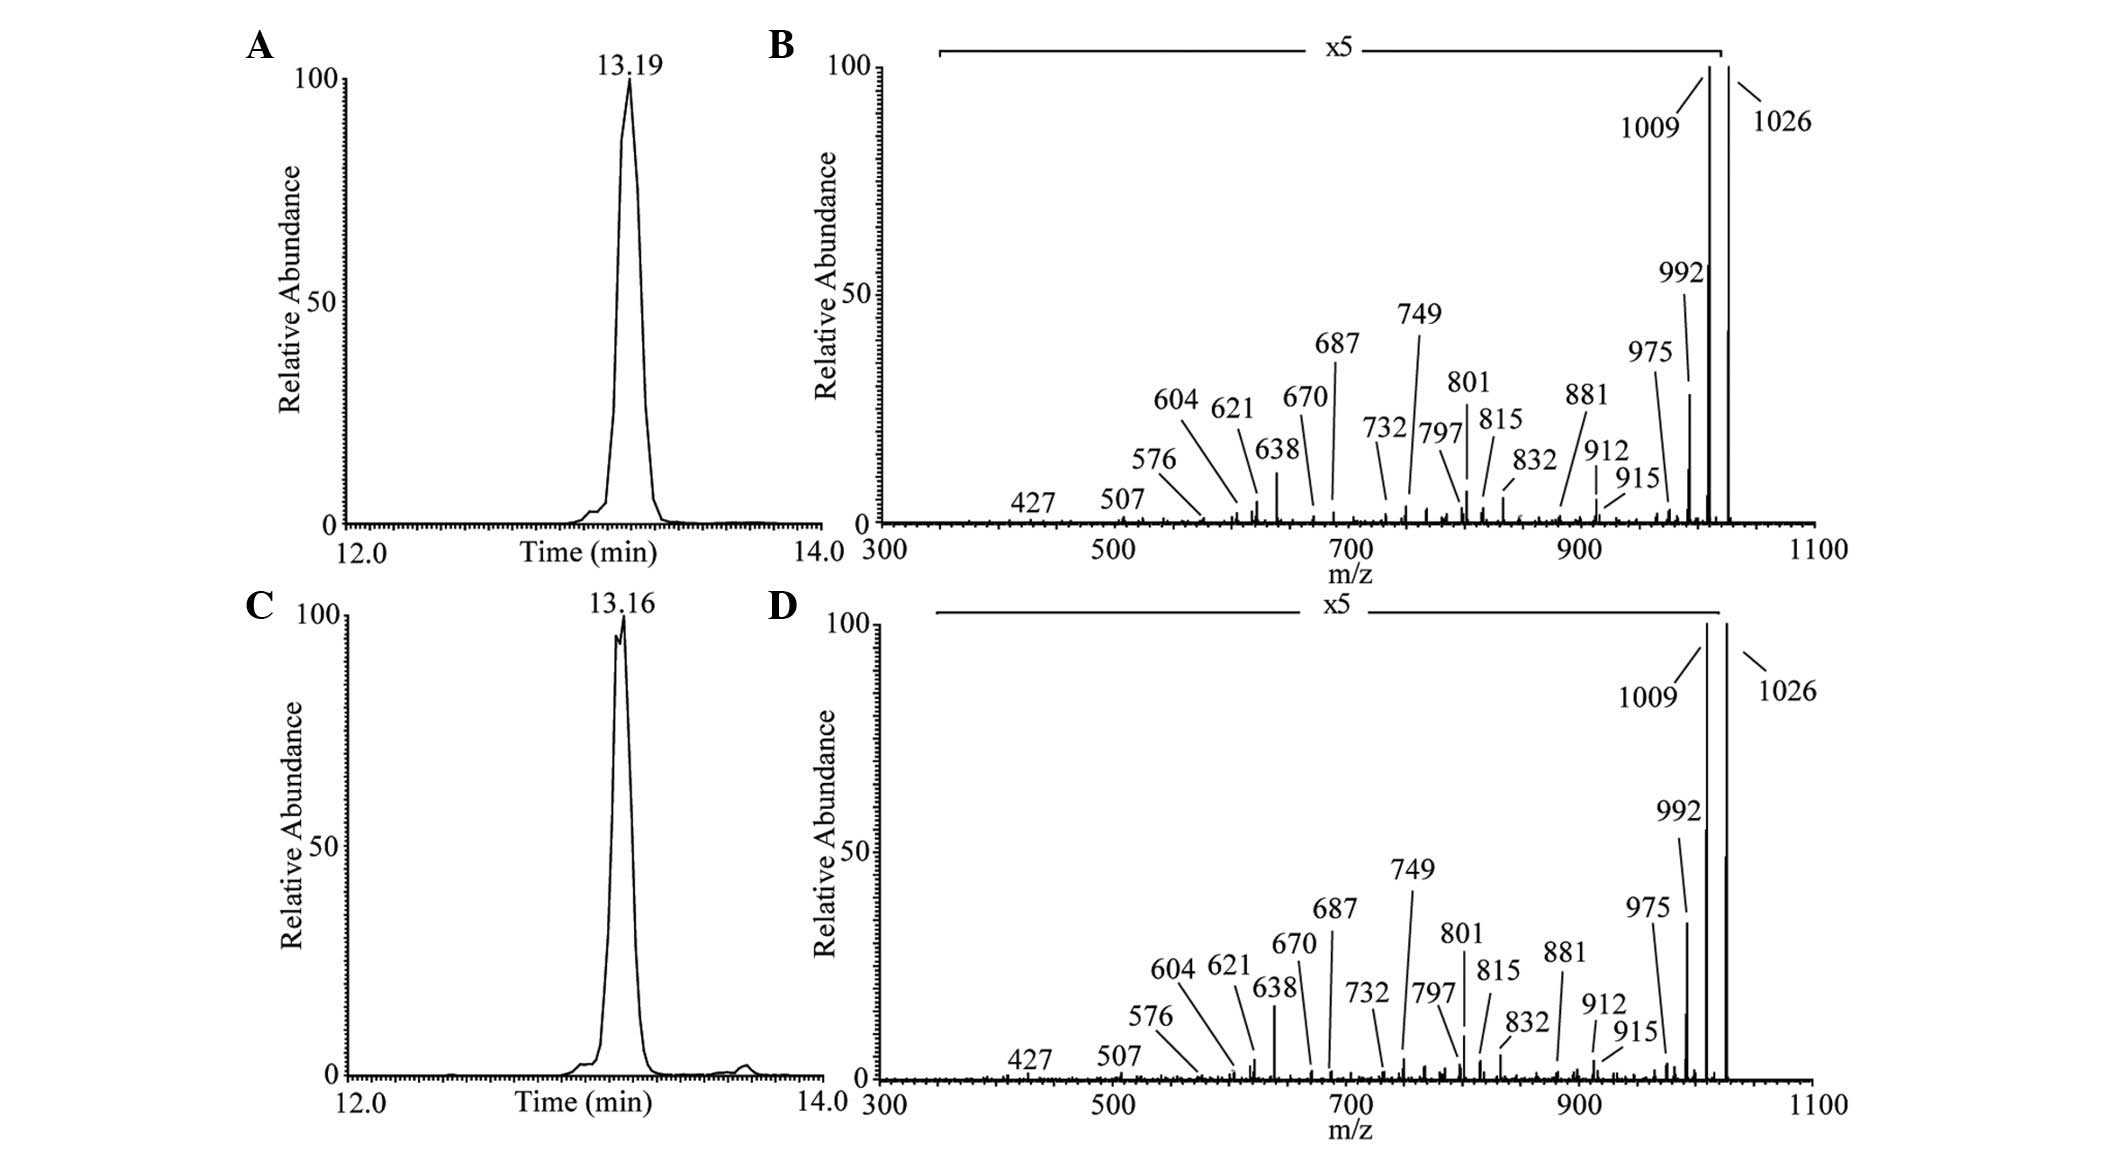 antibacterial activity of biosurfactant The enhancement of antibacterial activity of inhibitors in the presence of biosurfactant significantly increased the therapeutic potential of these compounds.